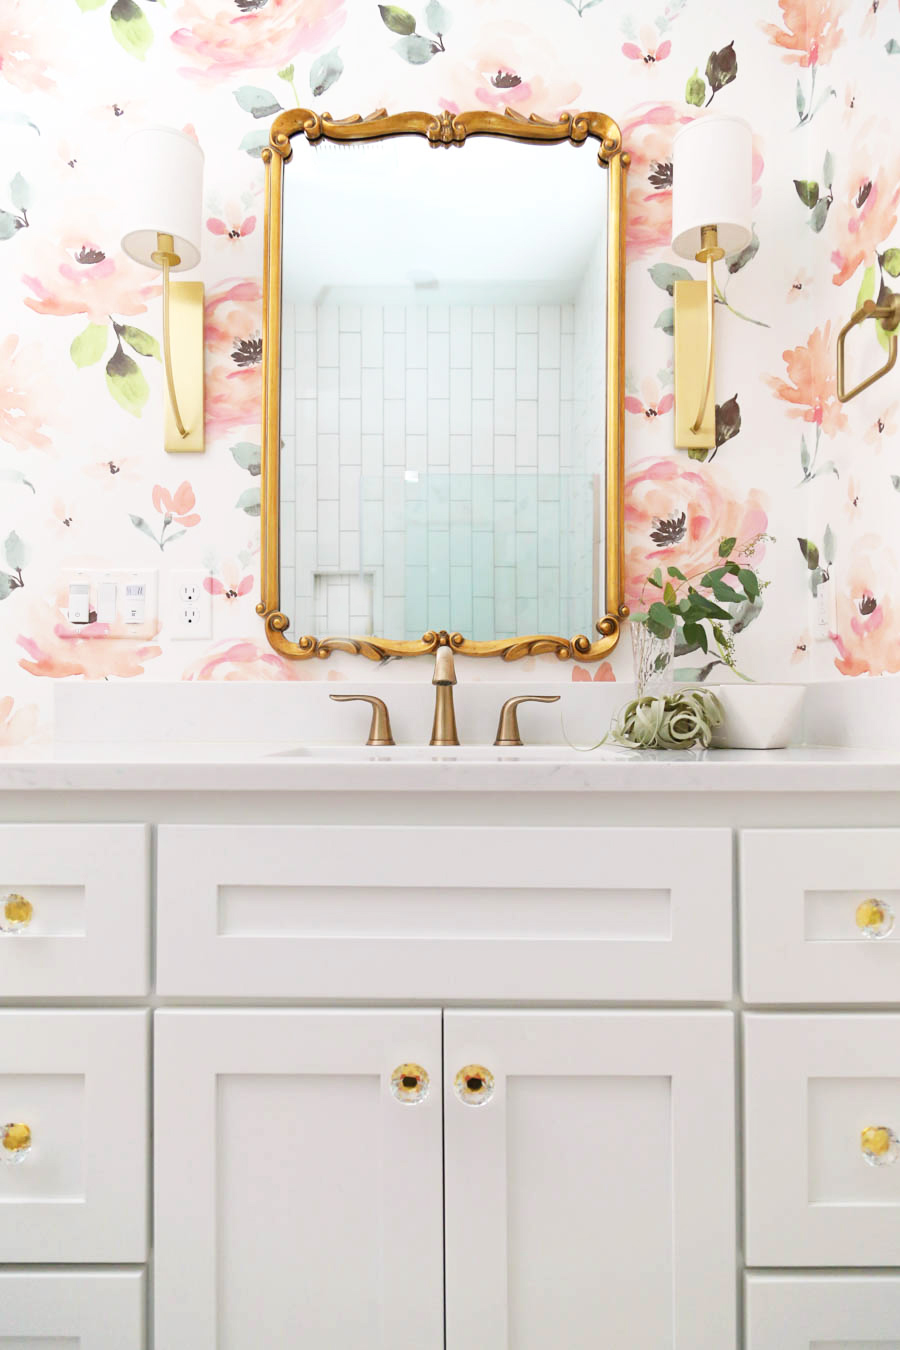 Cc And Mike Frisco I Project Reveal Modern Girls Bathroom Design With Floral Anthropologie Wallpaper White